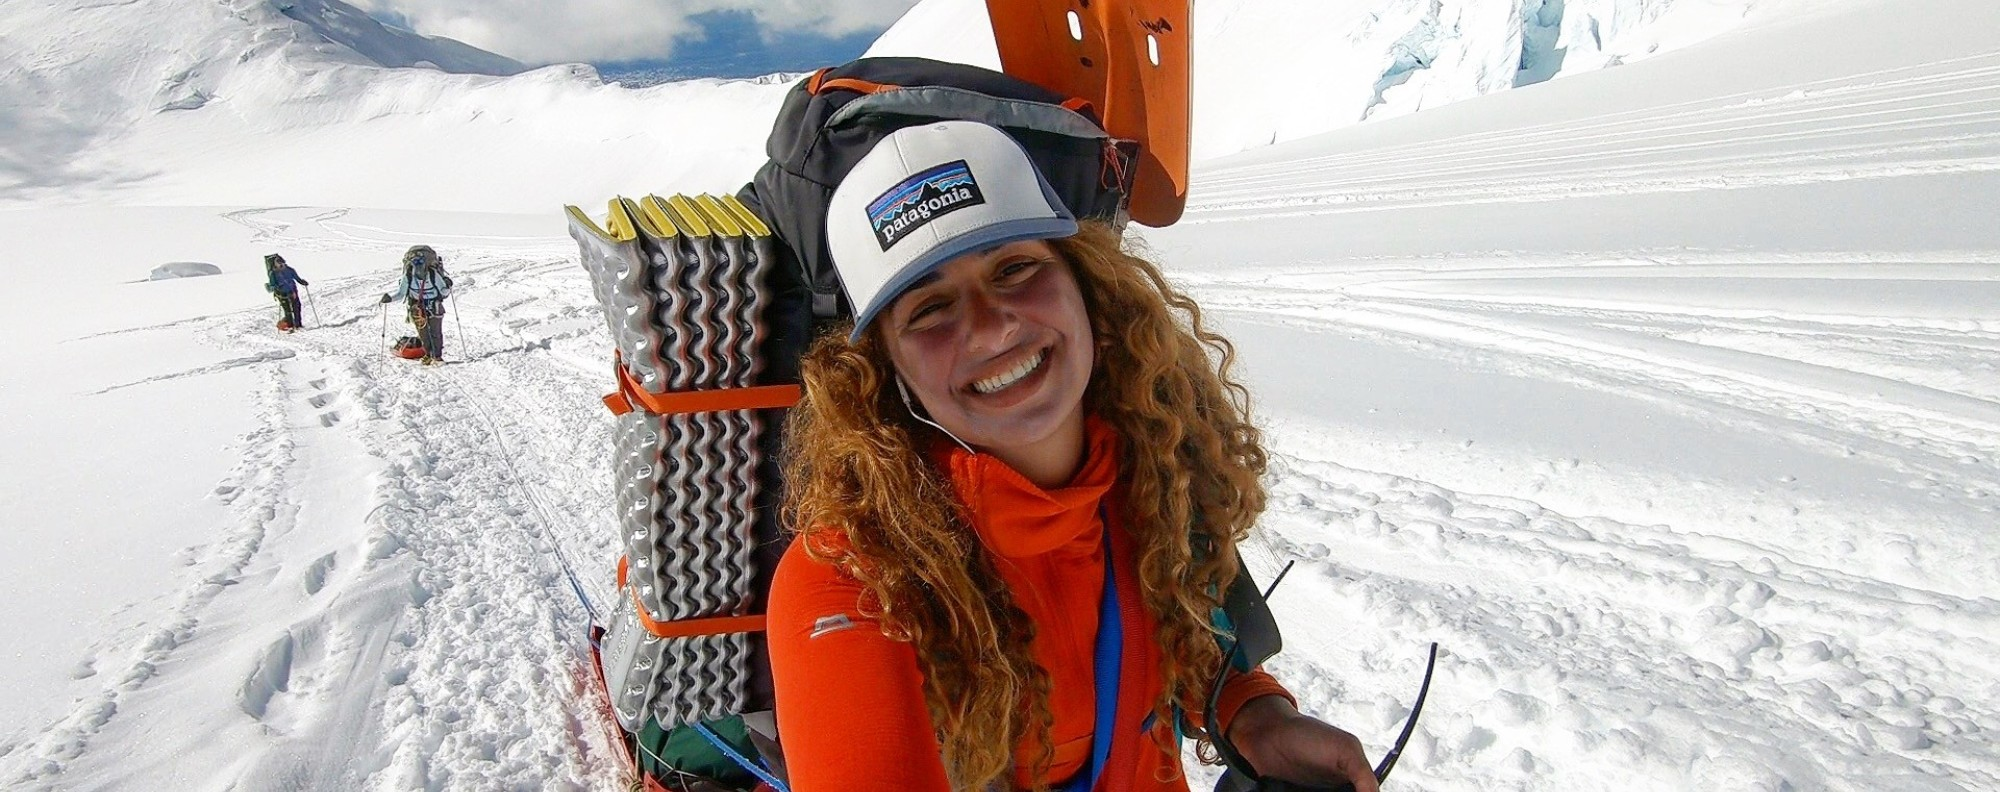 Fatima Deryan, climbing Denali, in North America, is an Arab mountaineer defying expectations for a Middle Eastern woman. Photo: Fatima Deryan